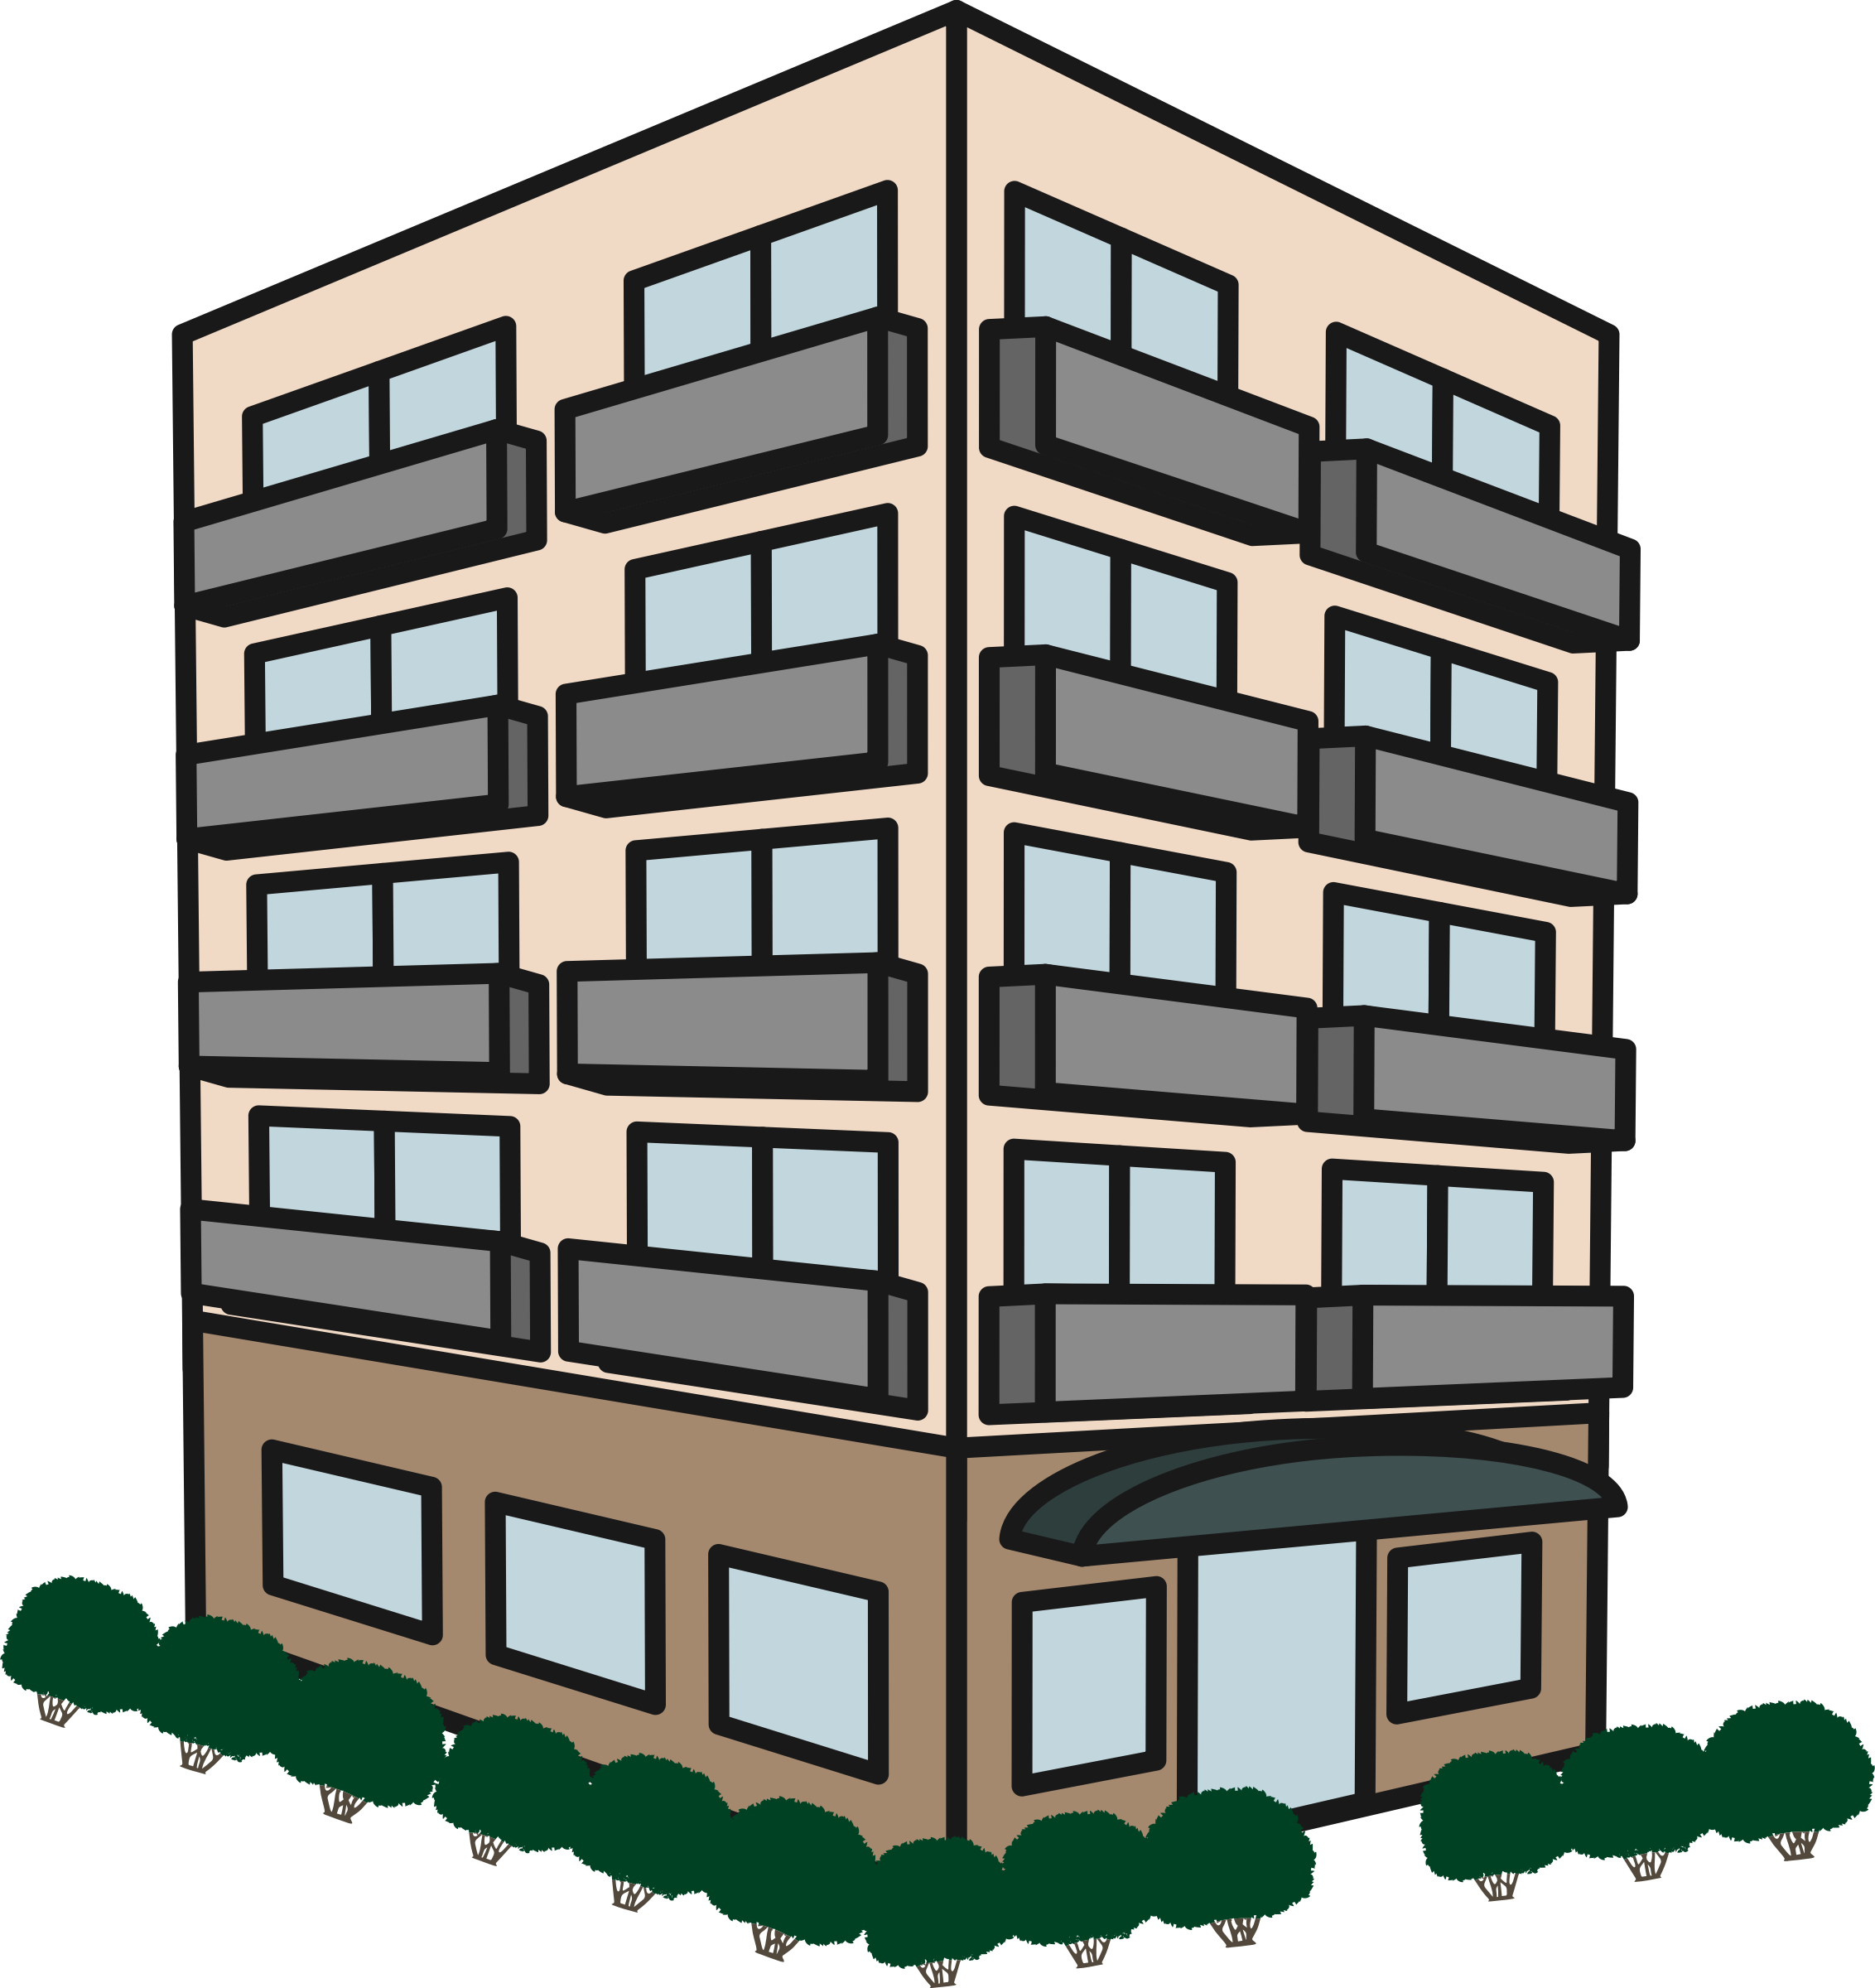 Clipart apartment big image. Building .png graphic transparent library